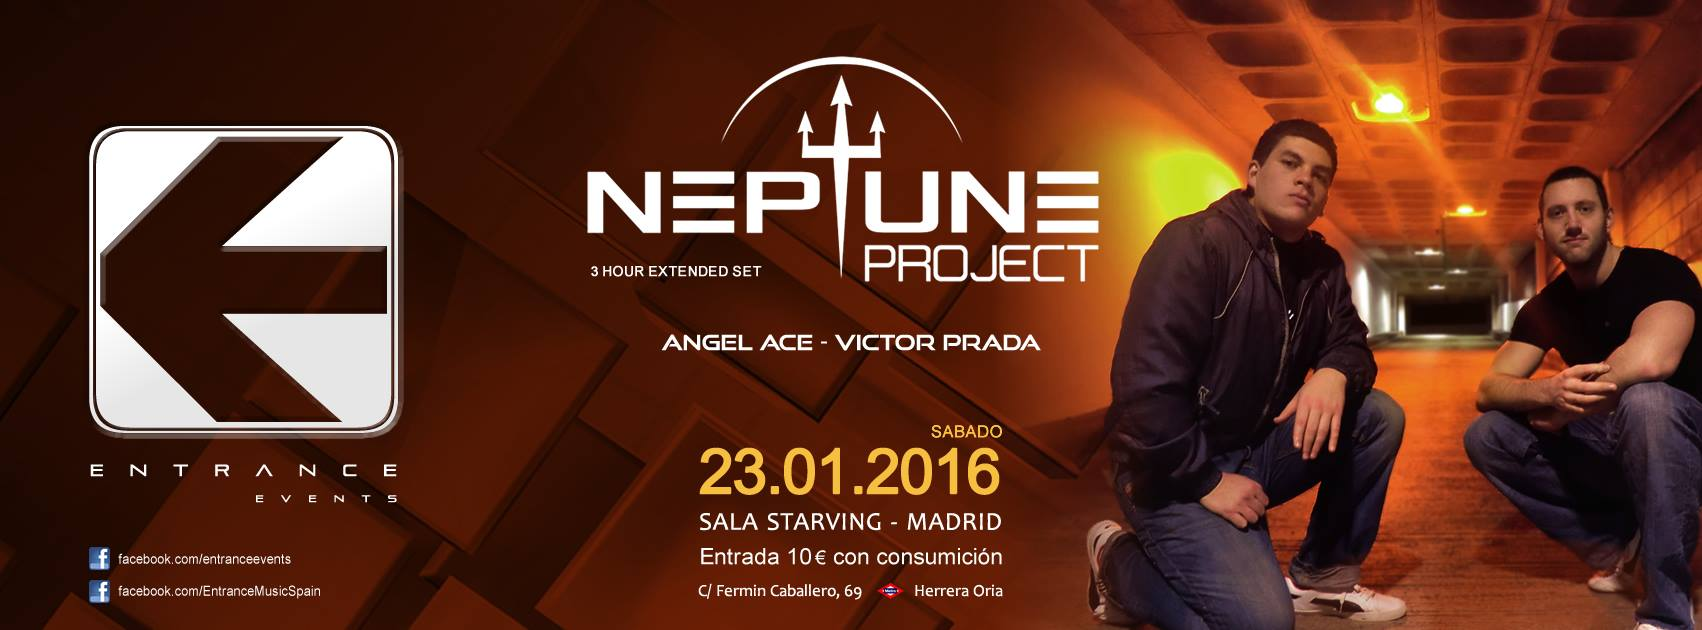 Neptune Project abre el año trancero en Madrid con Entrance